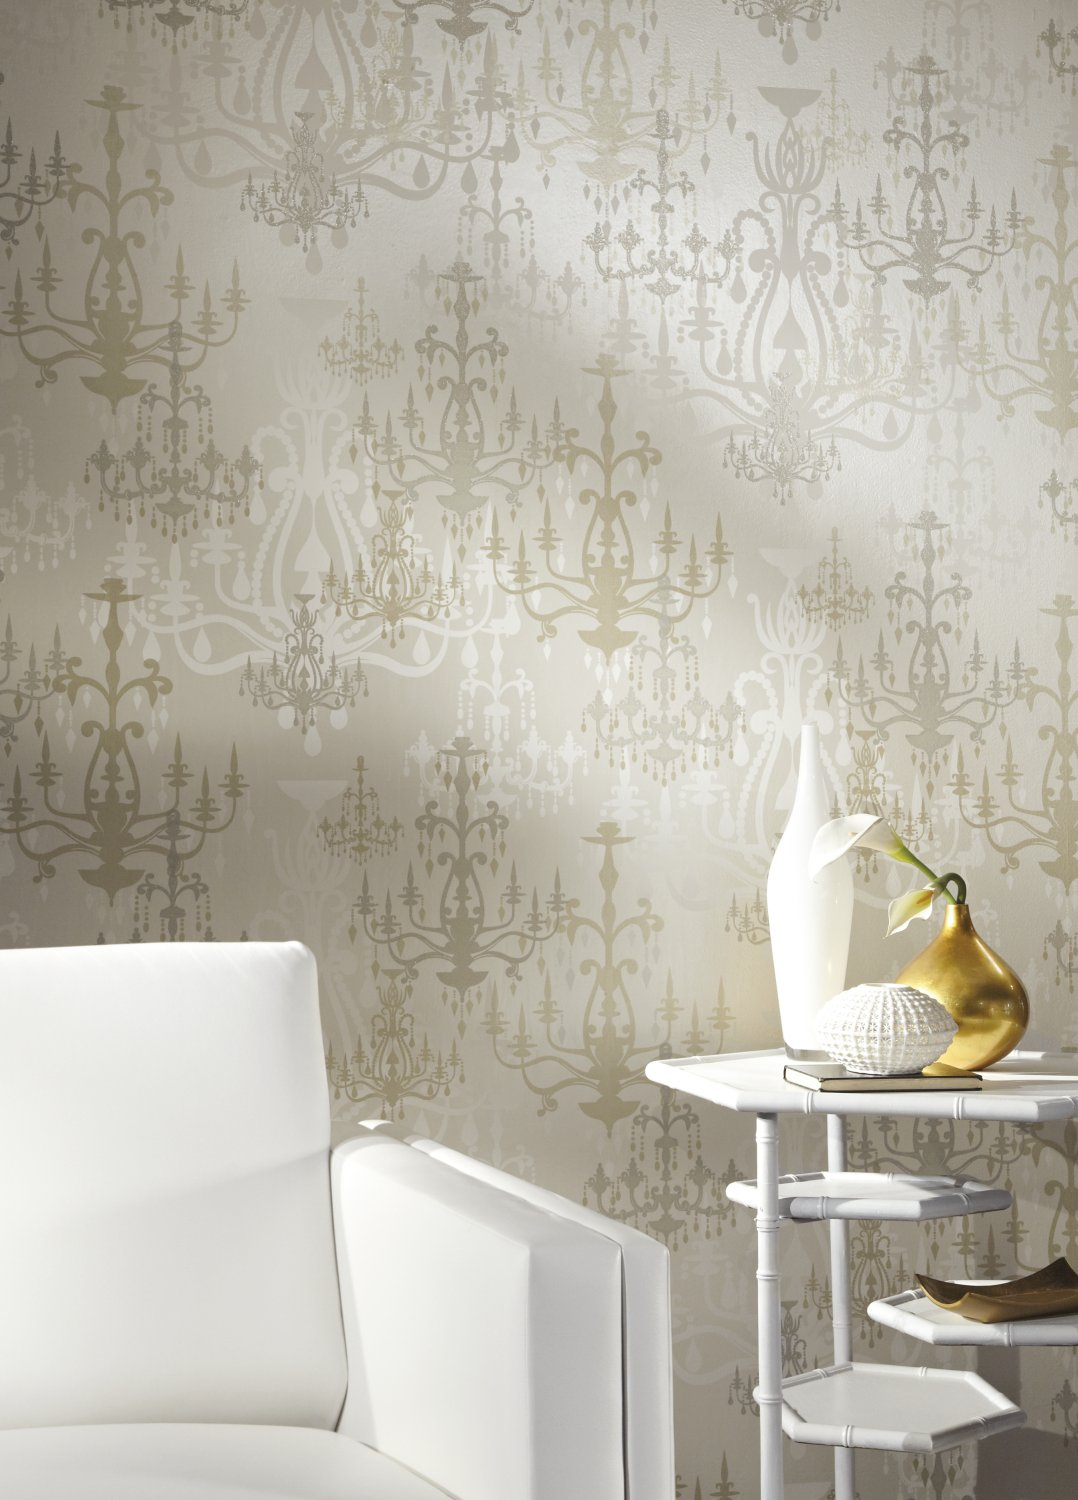 Beige York Wallcoverings WH2627SMP Wallpaper-Her Luminary Wallpaper Memo Sample Cream Pearl Glittering Hot Pink 8-Inch x 10-Inch